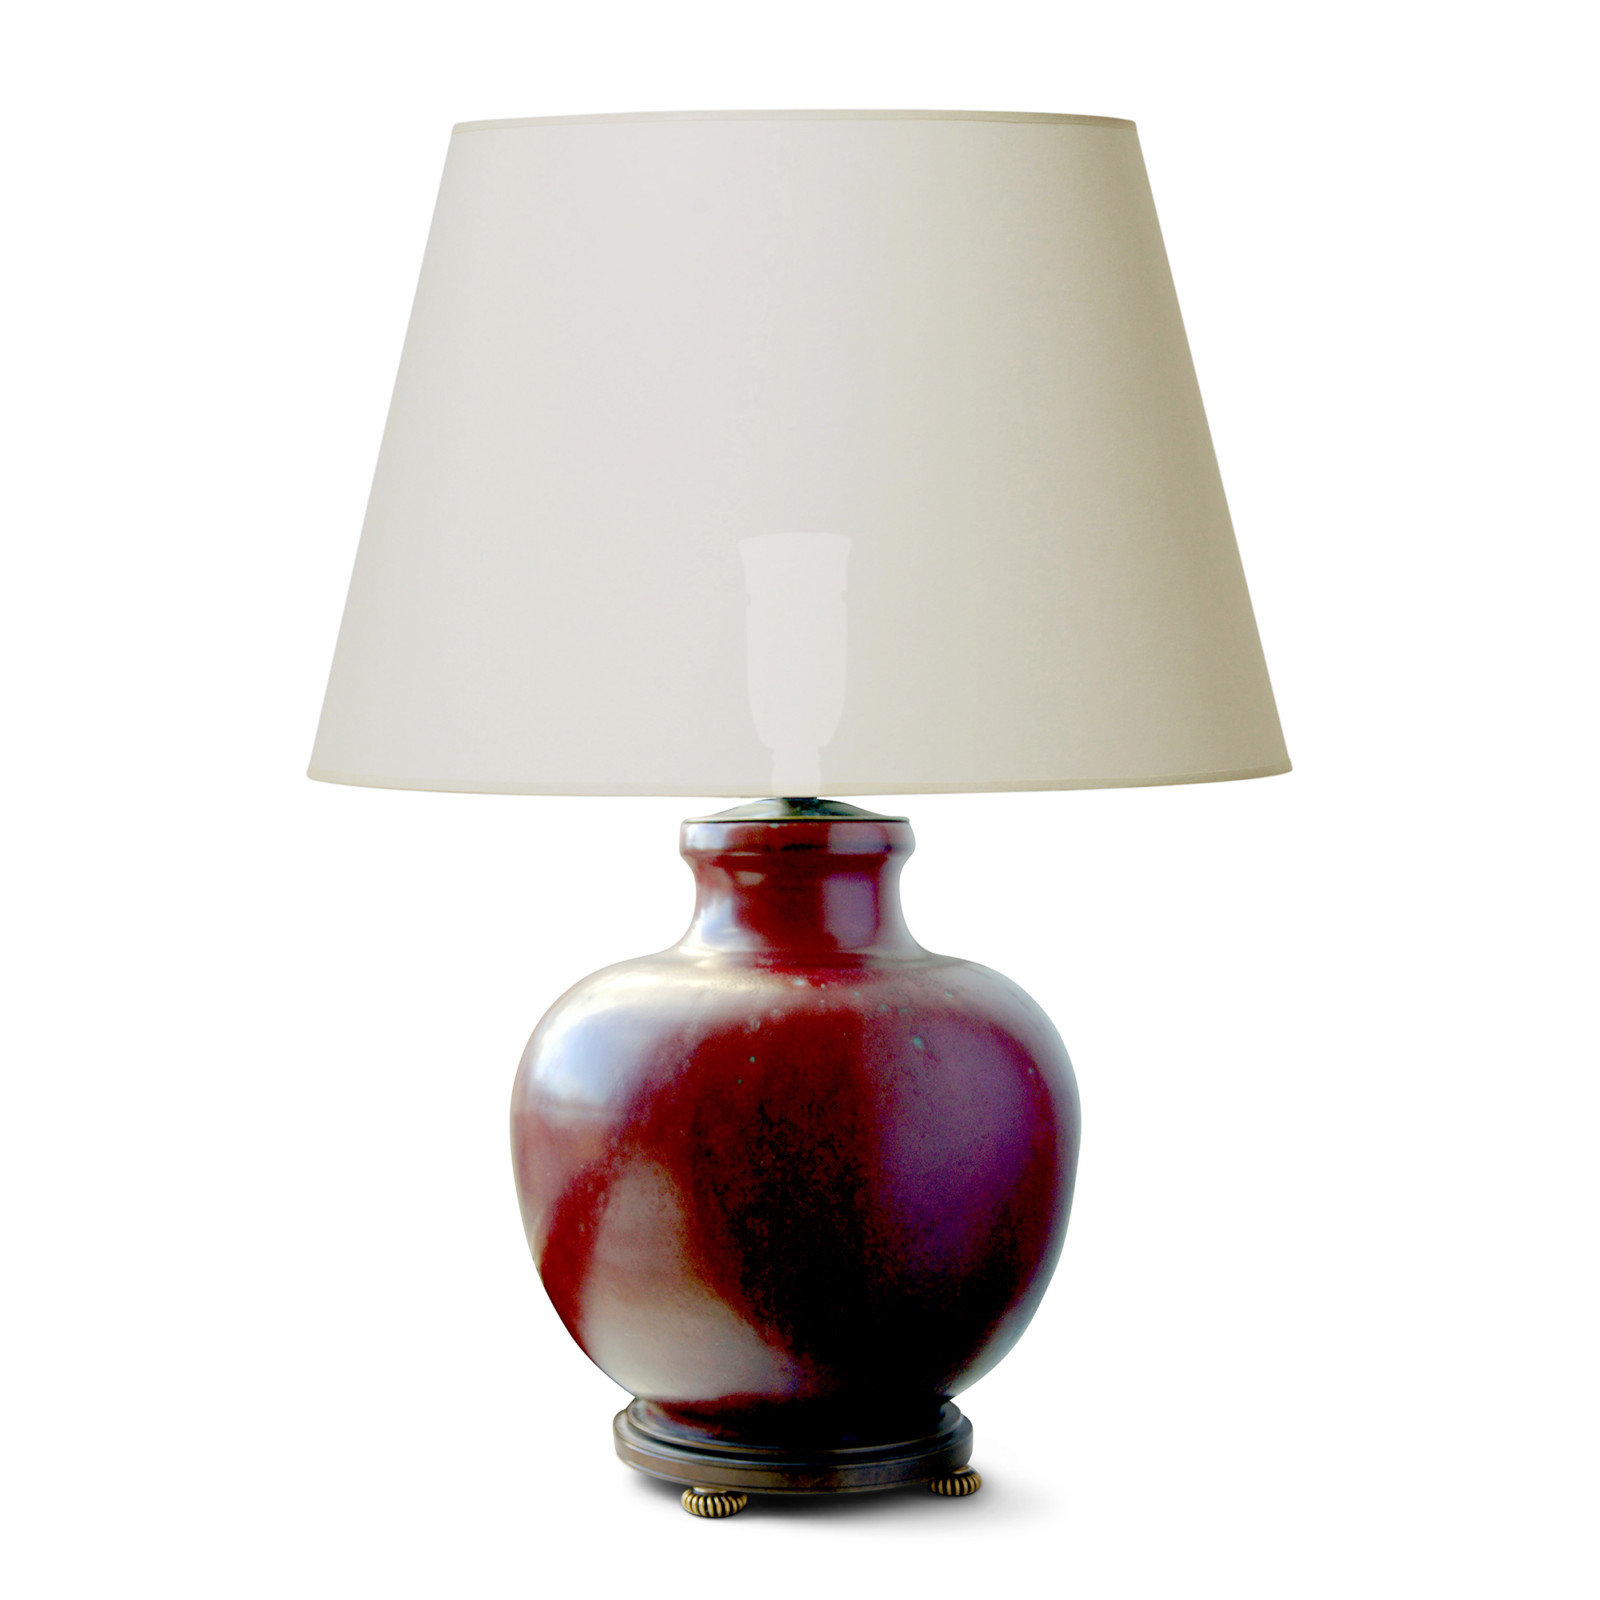 Gallery bac exquisite table lamp in oxblood glaze on bronze stand gallery bac exquisite table lamp in oxblood glaze on bronze stand by carl halier mozeypictures Gallery